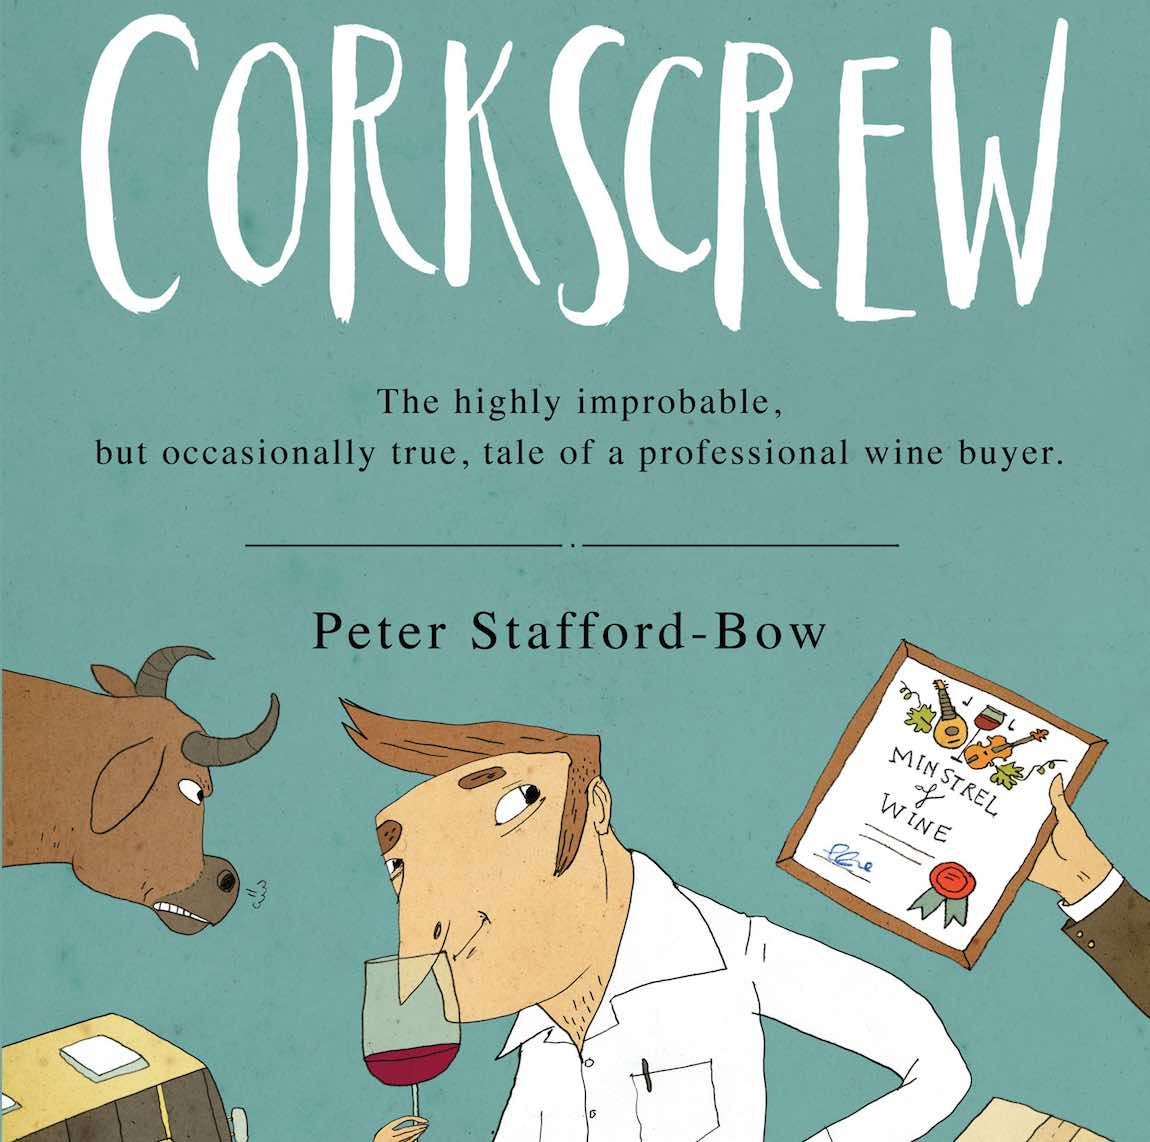 Corkscrew book review Peter Stafford-Bow